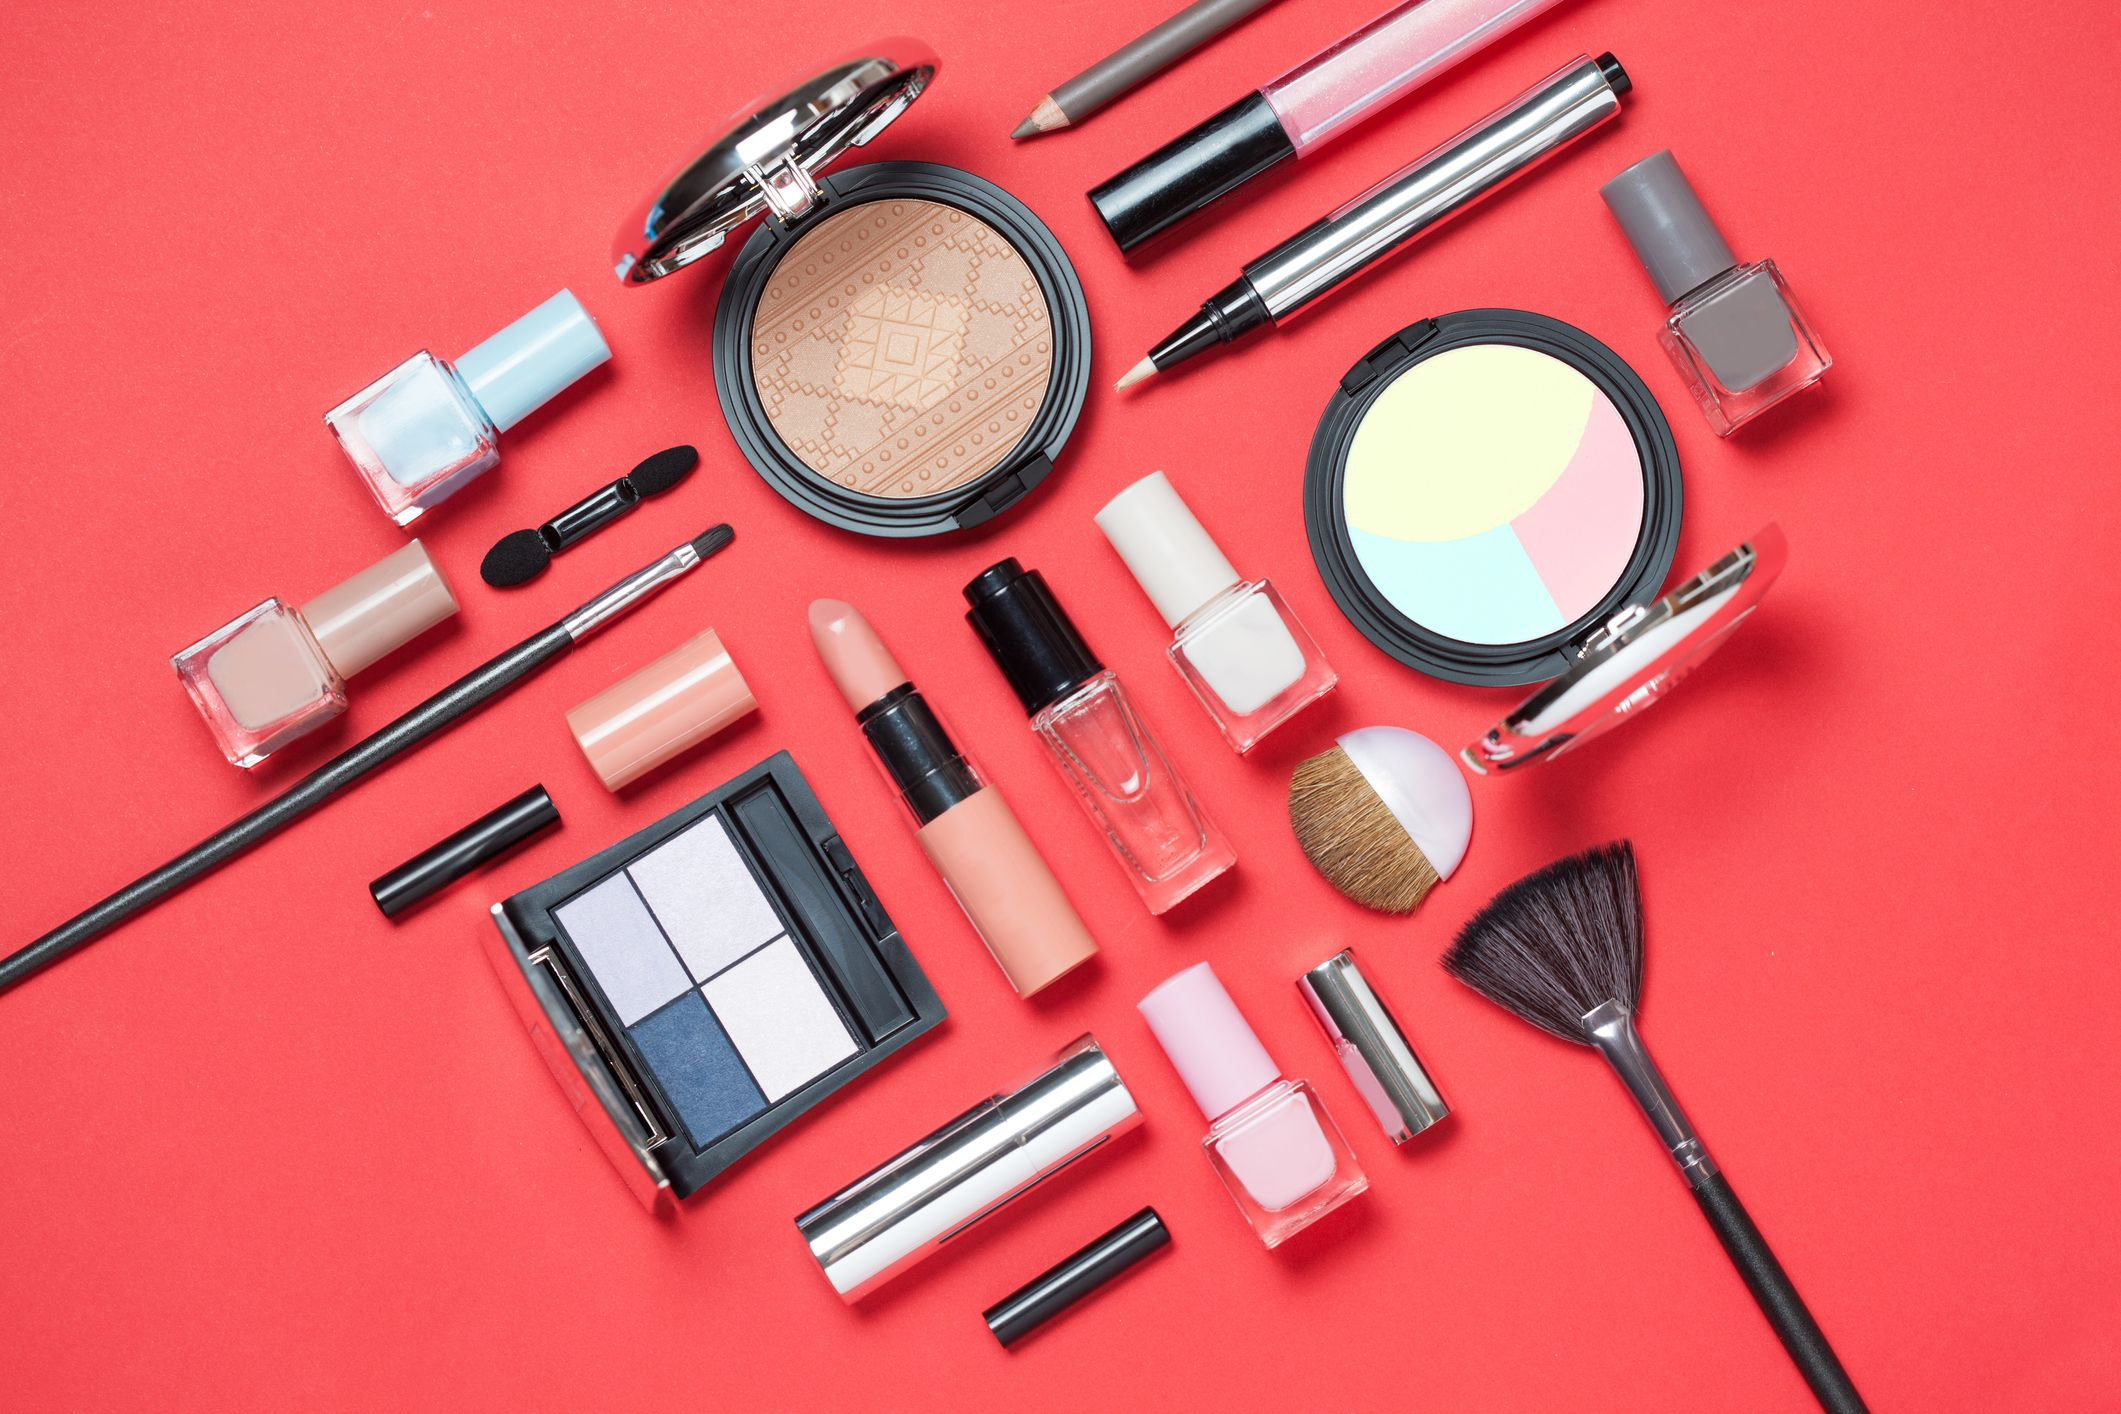 Best Drugstore Makeup 2020 - Budget-Friendly Beauty Products